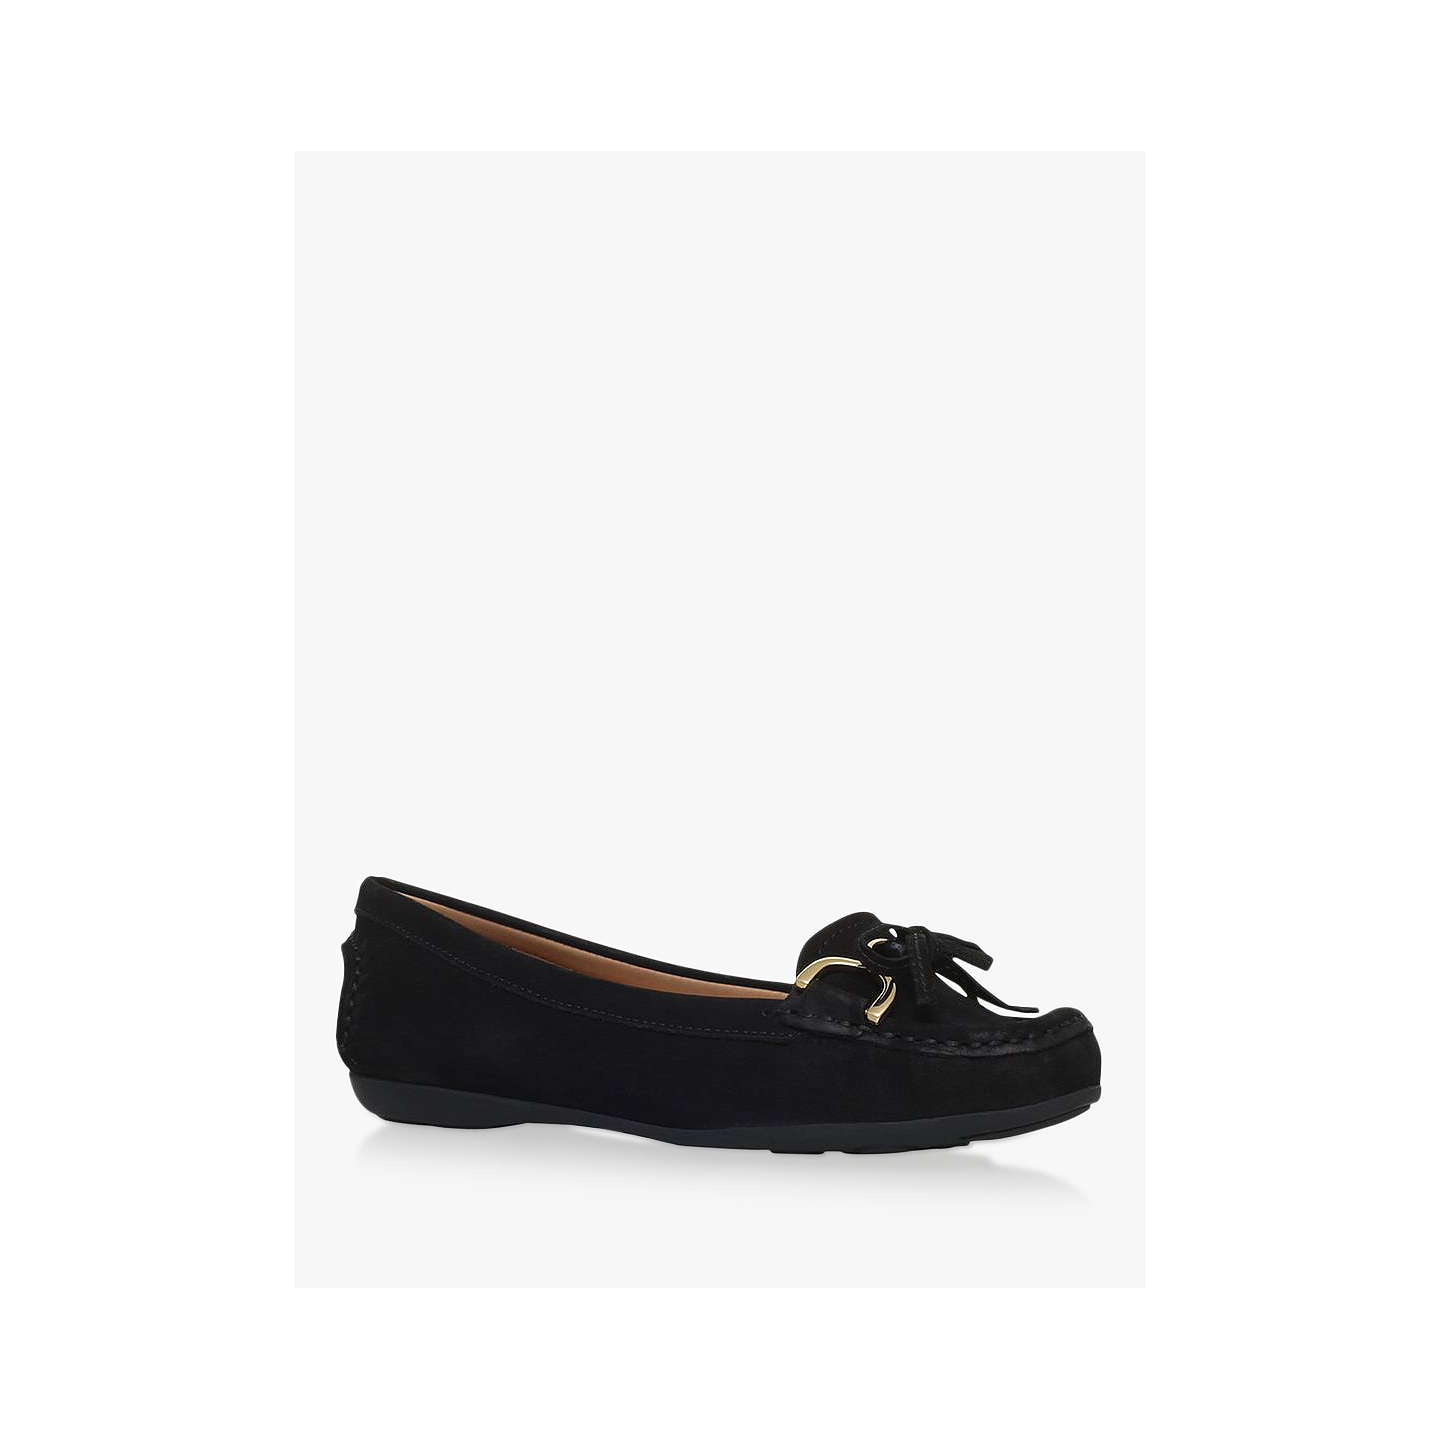 BuyCarvela Comfort Cally Bow Loafers, Black, 3 Online at johnlewis.com ...